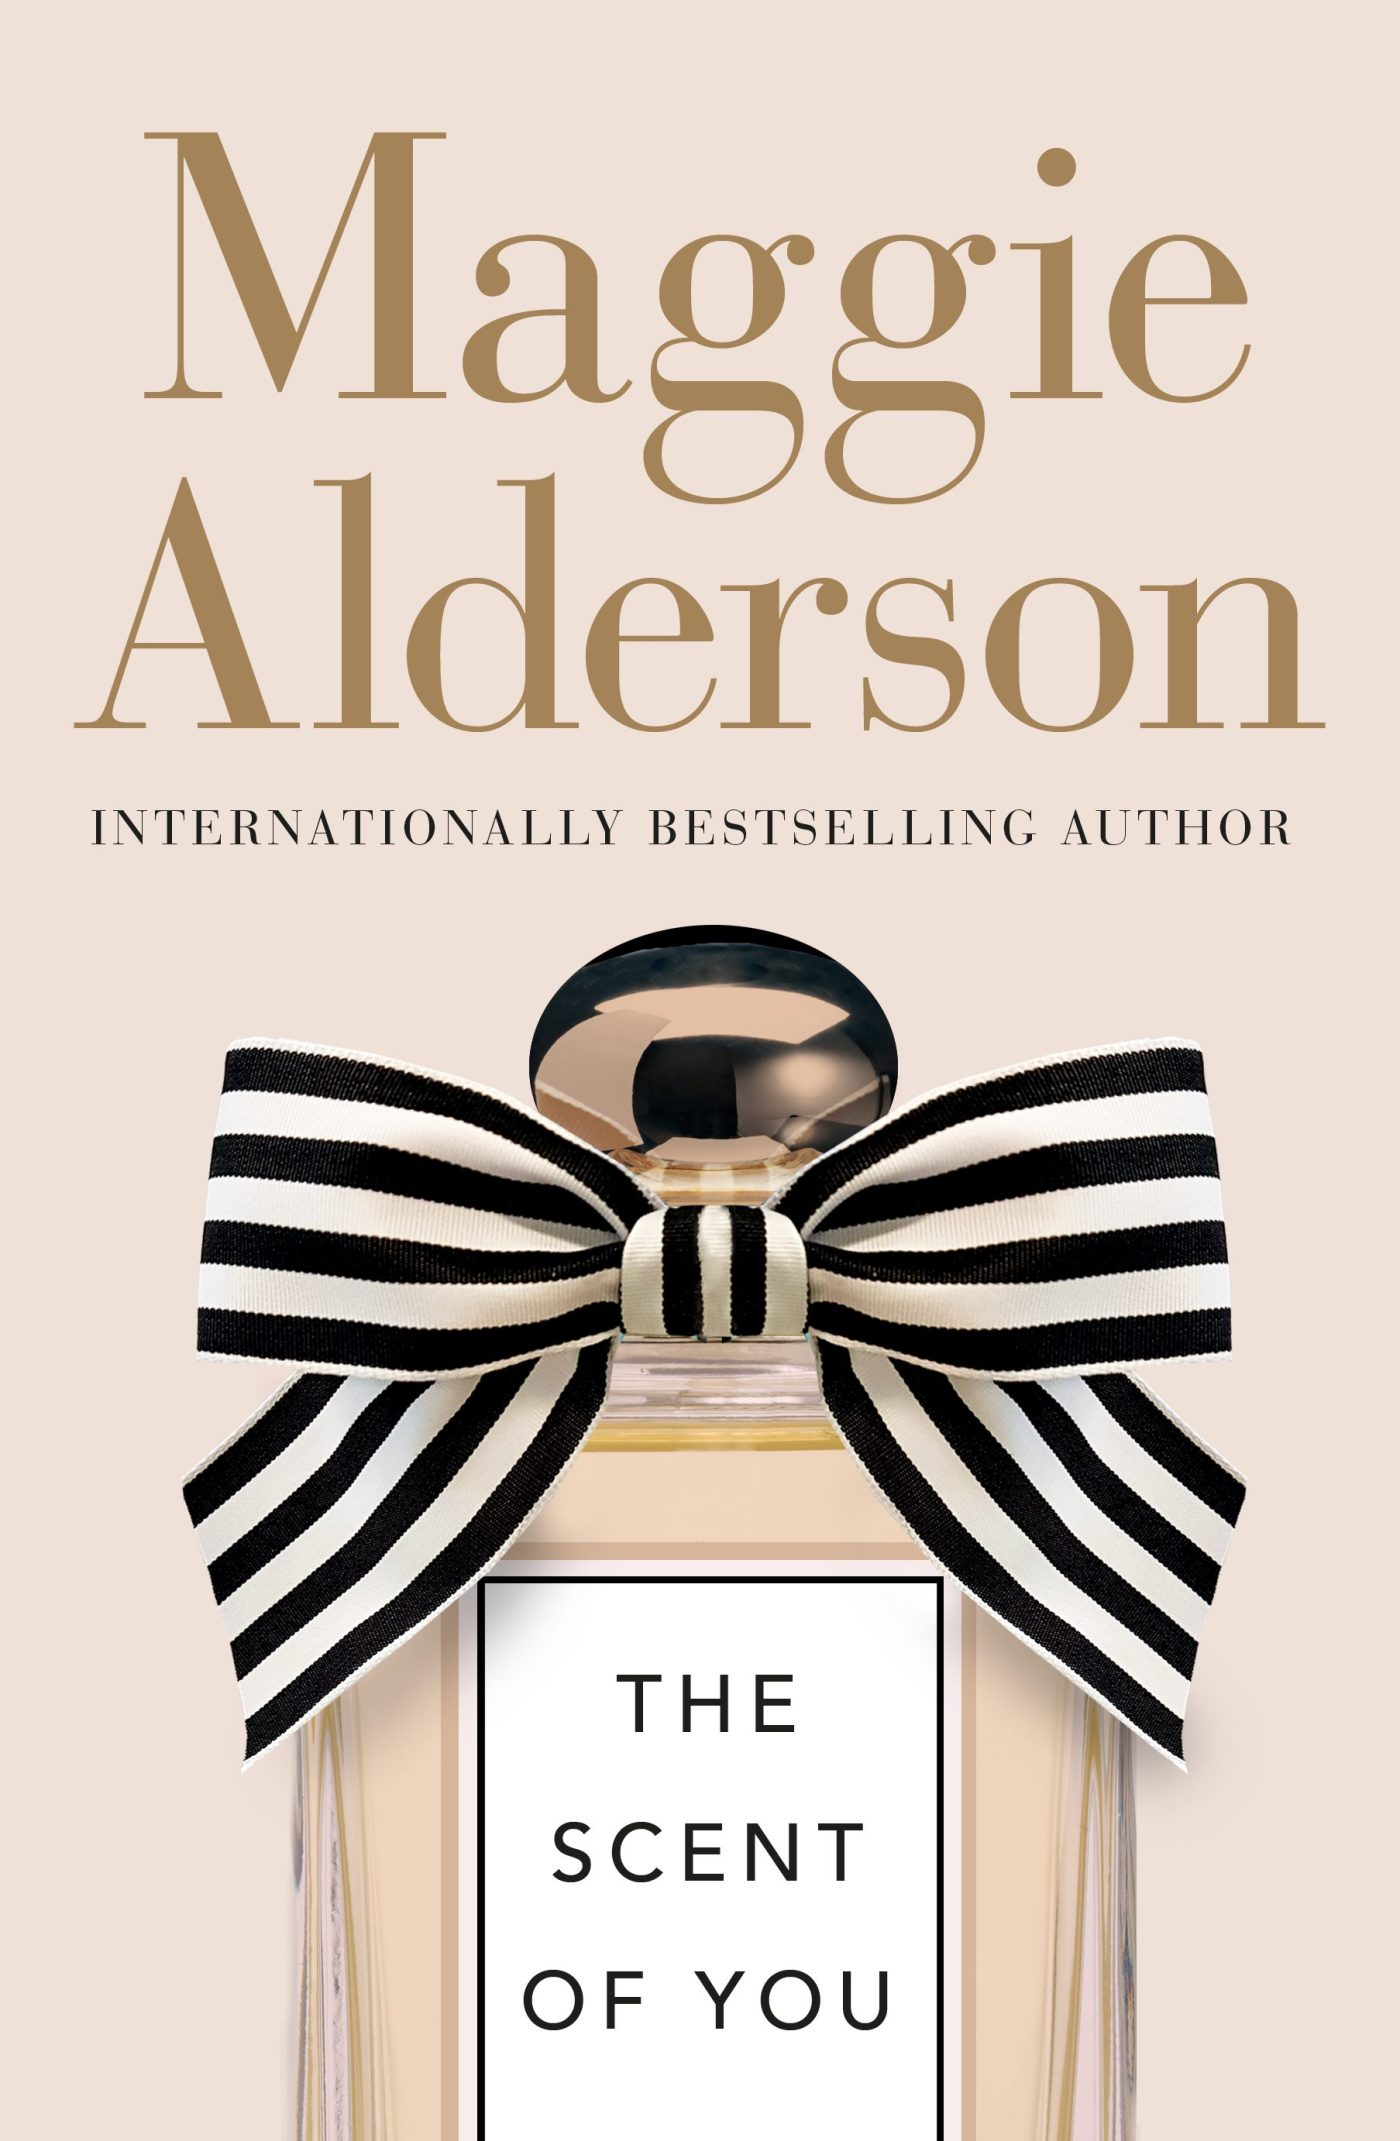 This blog is from maggie alderson s new book the scent of you out on march 27th in australia it s the story of perfume blogger polly masterson mackay